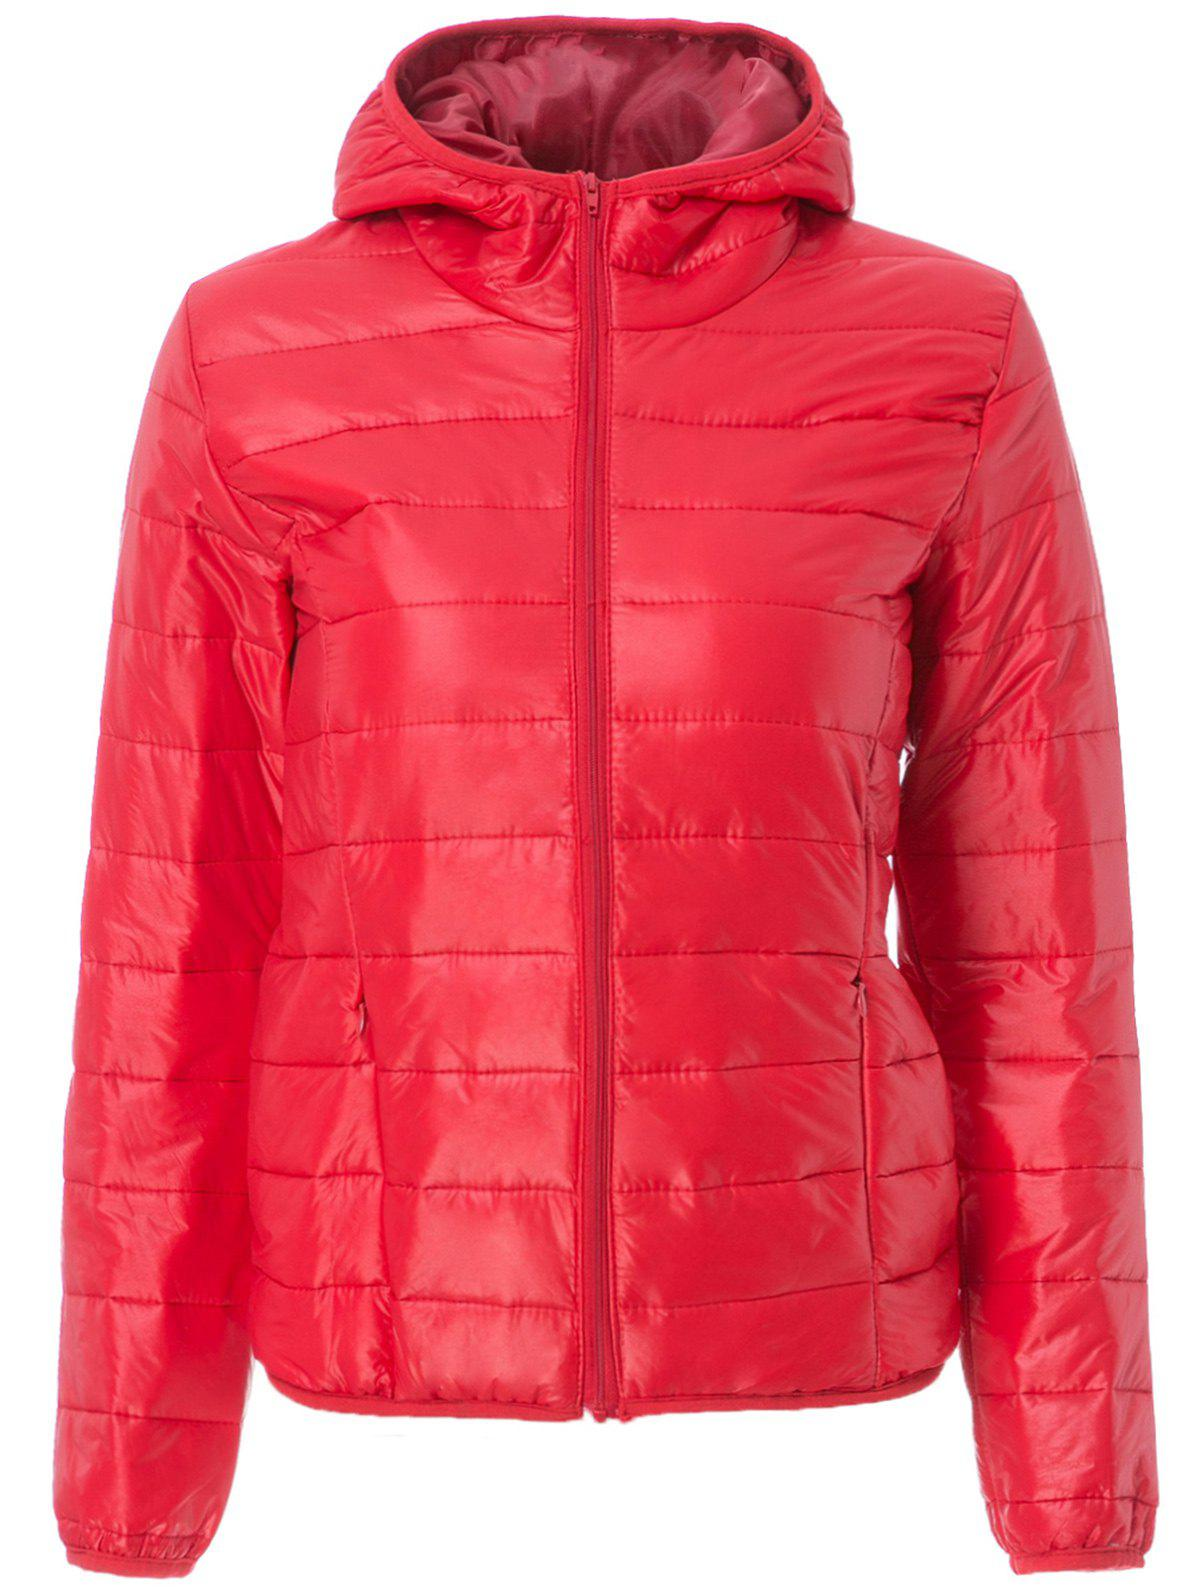 Stylish Hooded Long Sleeve Pocket Design Zippered Women's Down Jacket - RED M